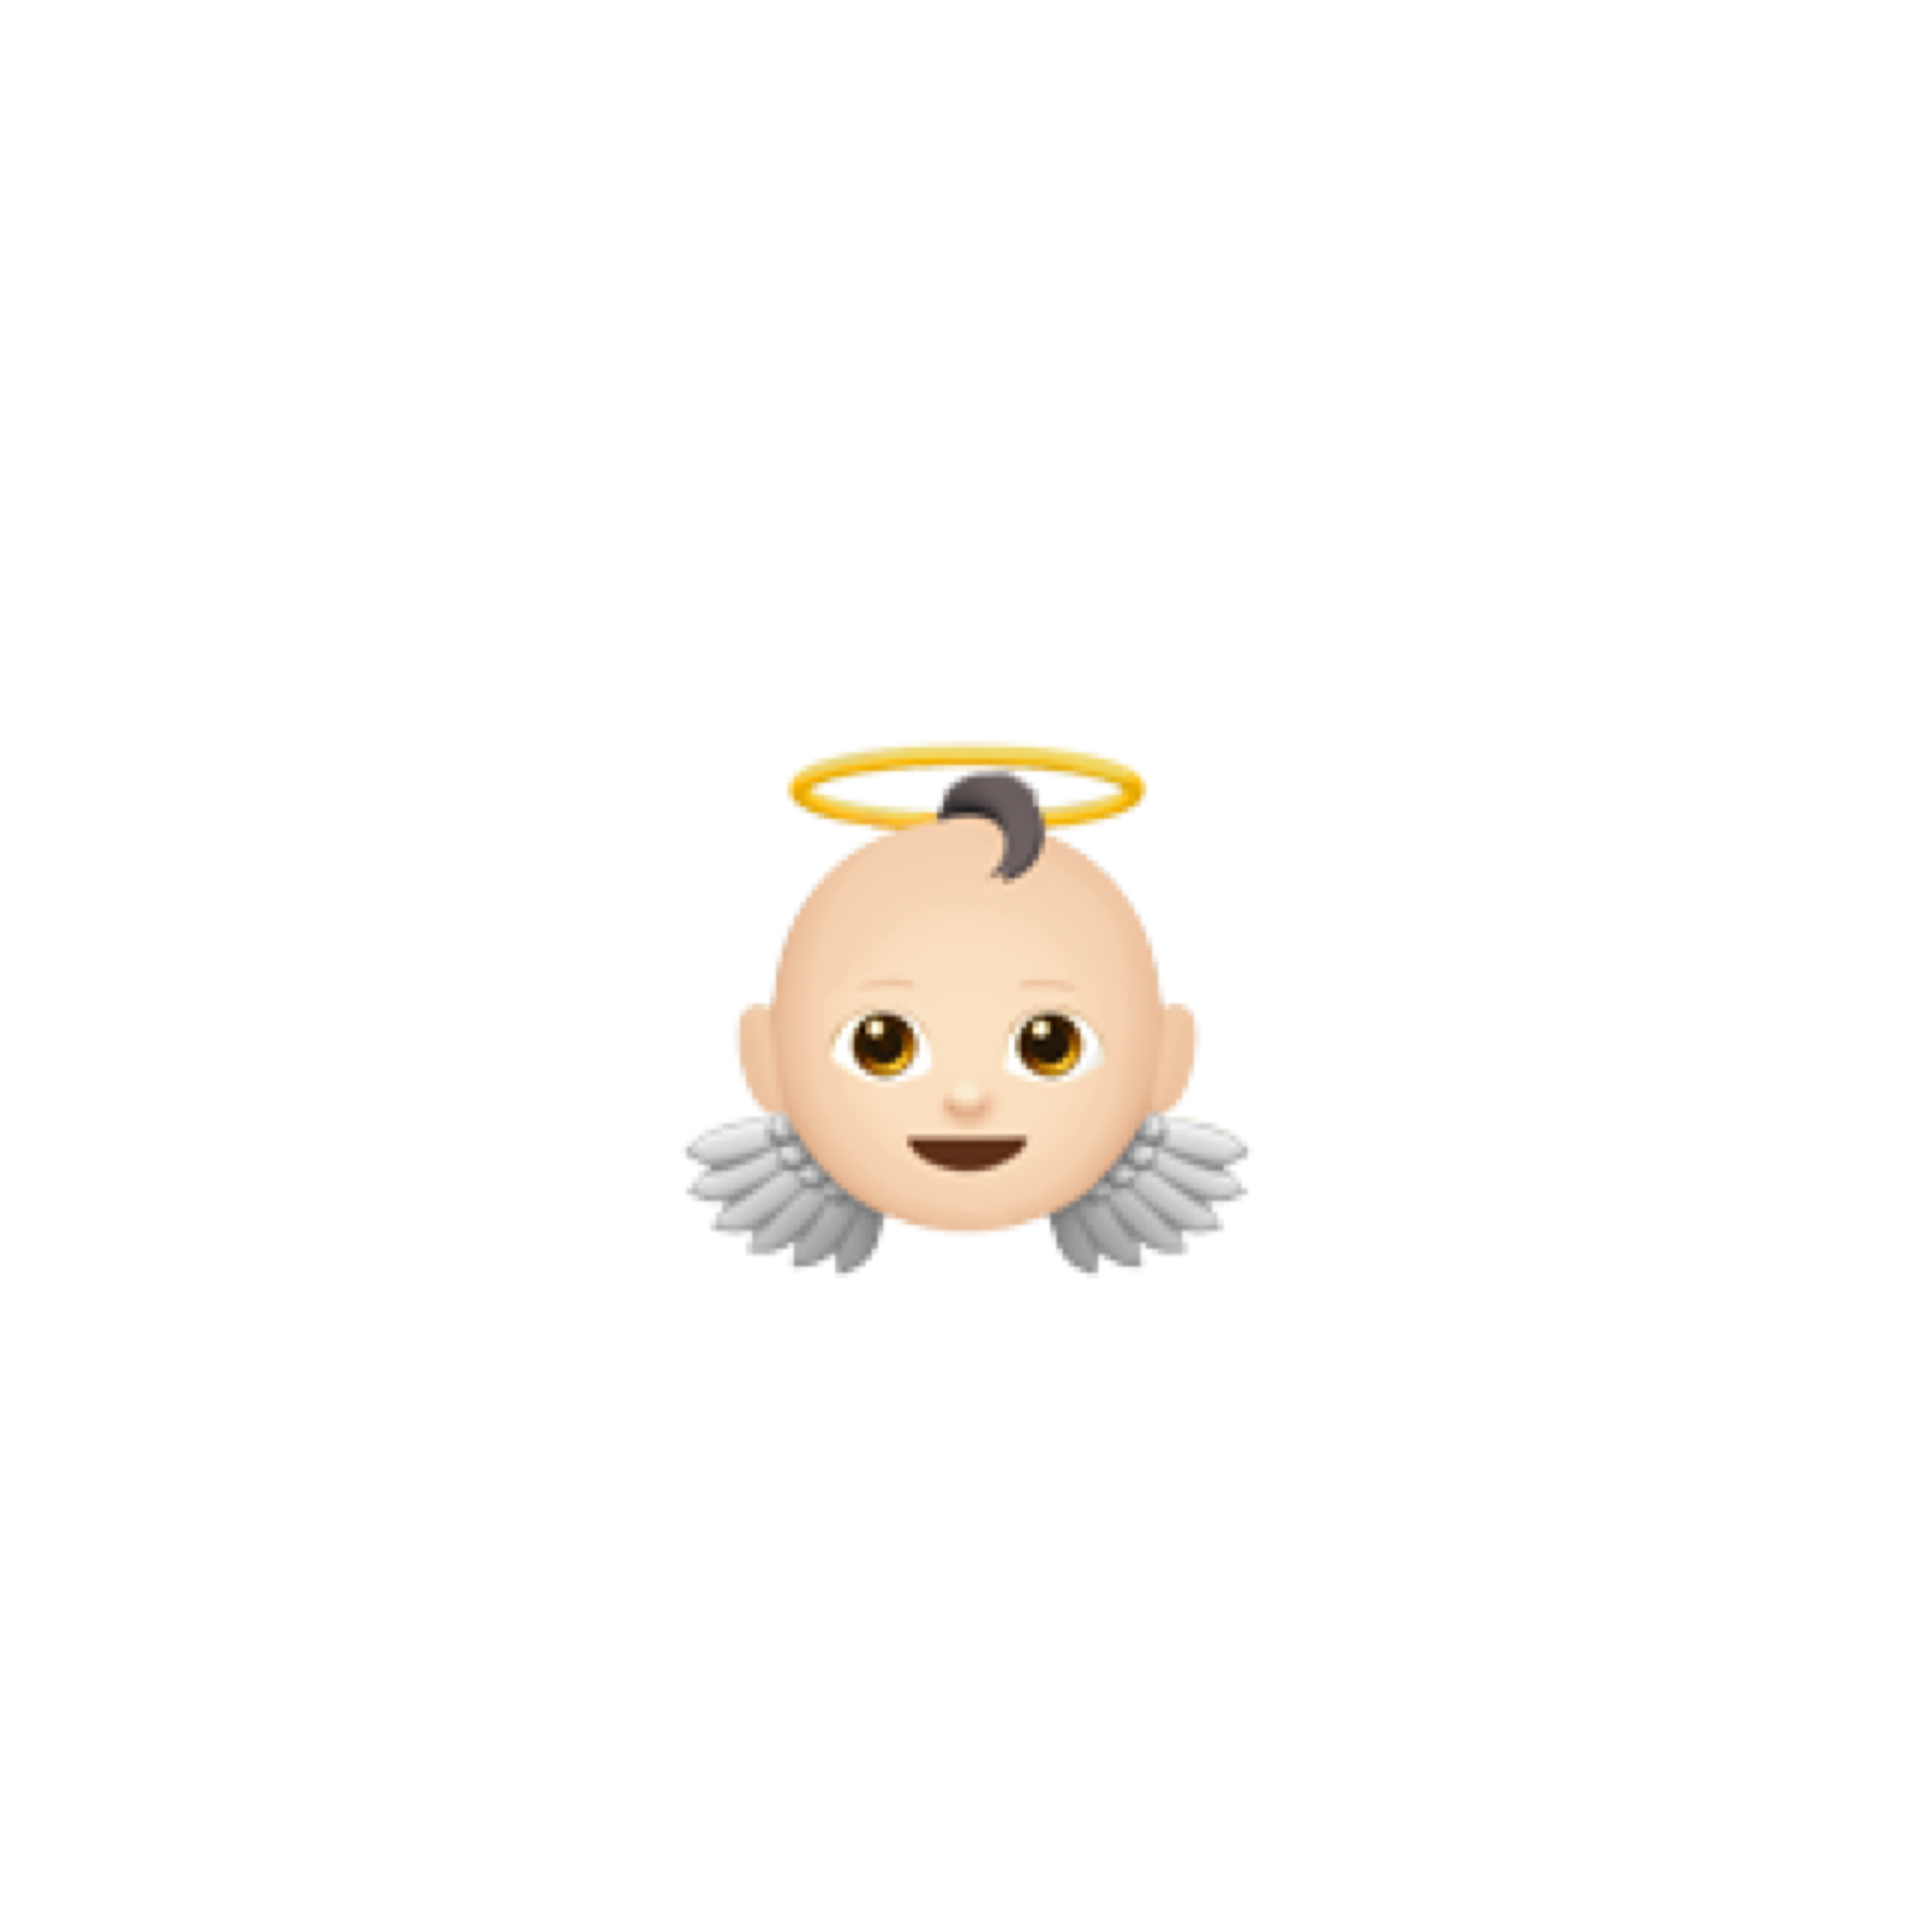 Emoji Baby Angel Png Picsart Ios Iphone Gravador De Tela Emojis Animal De Estimacao